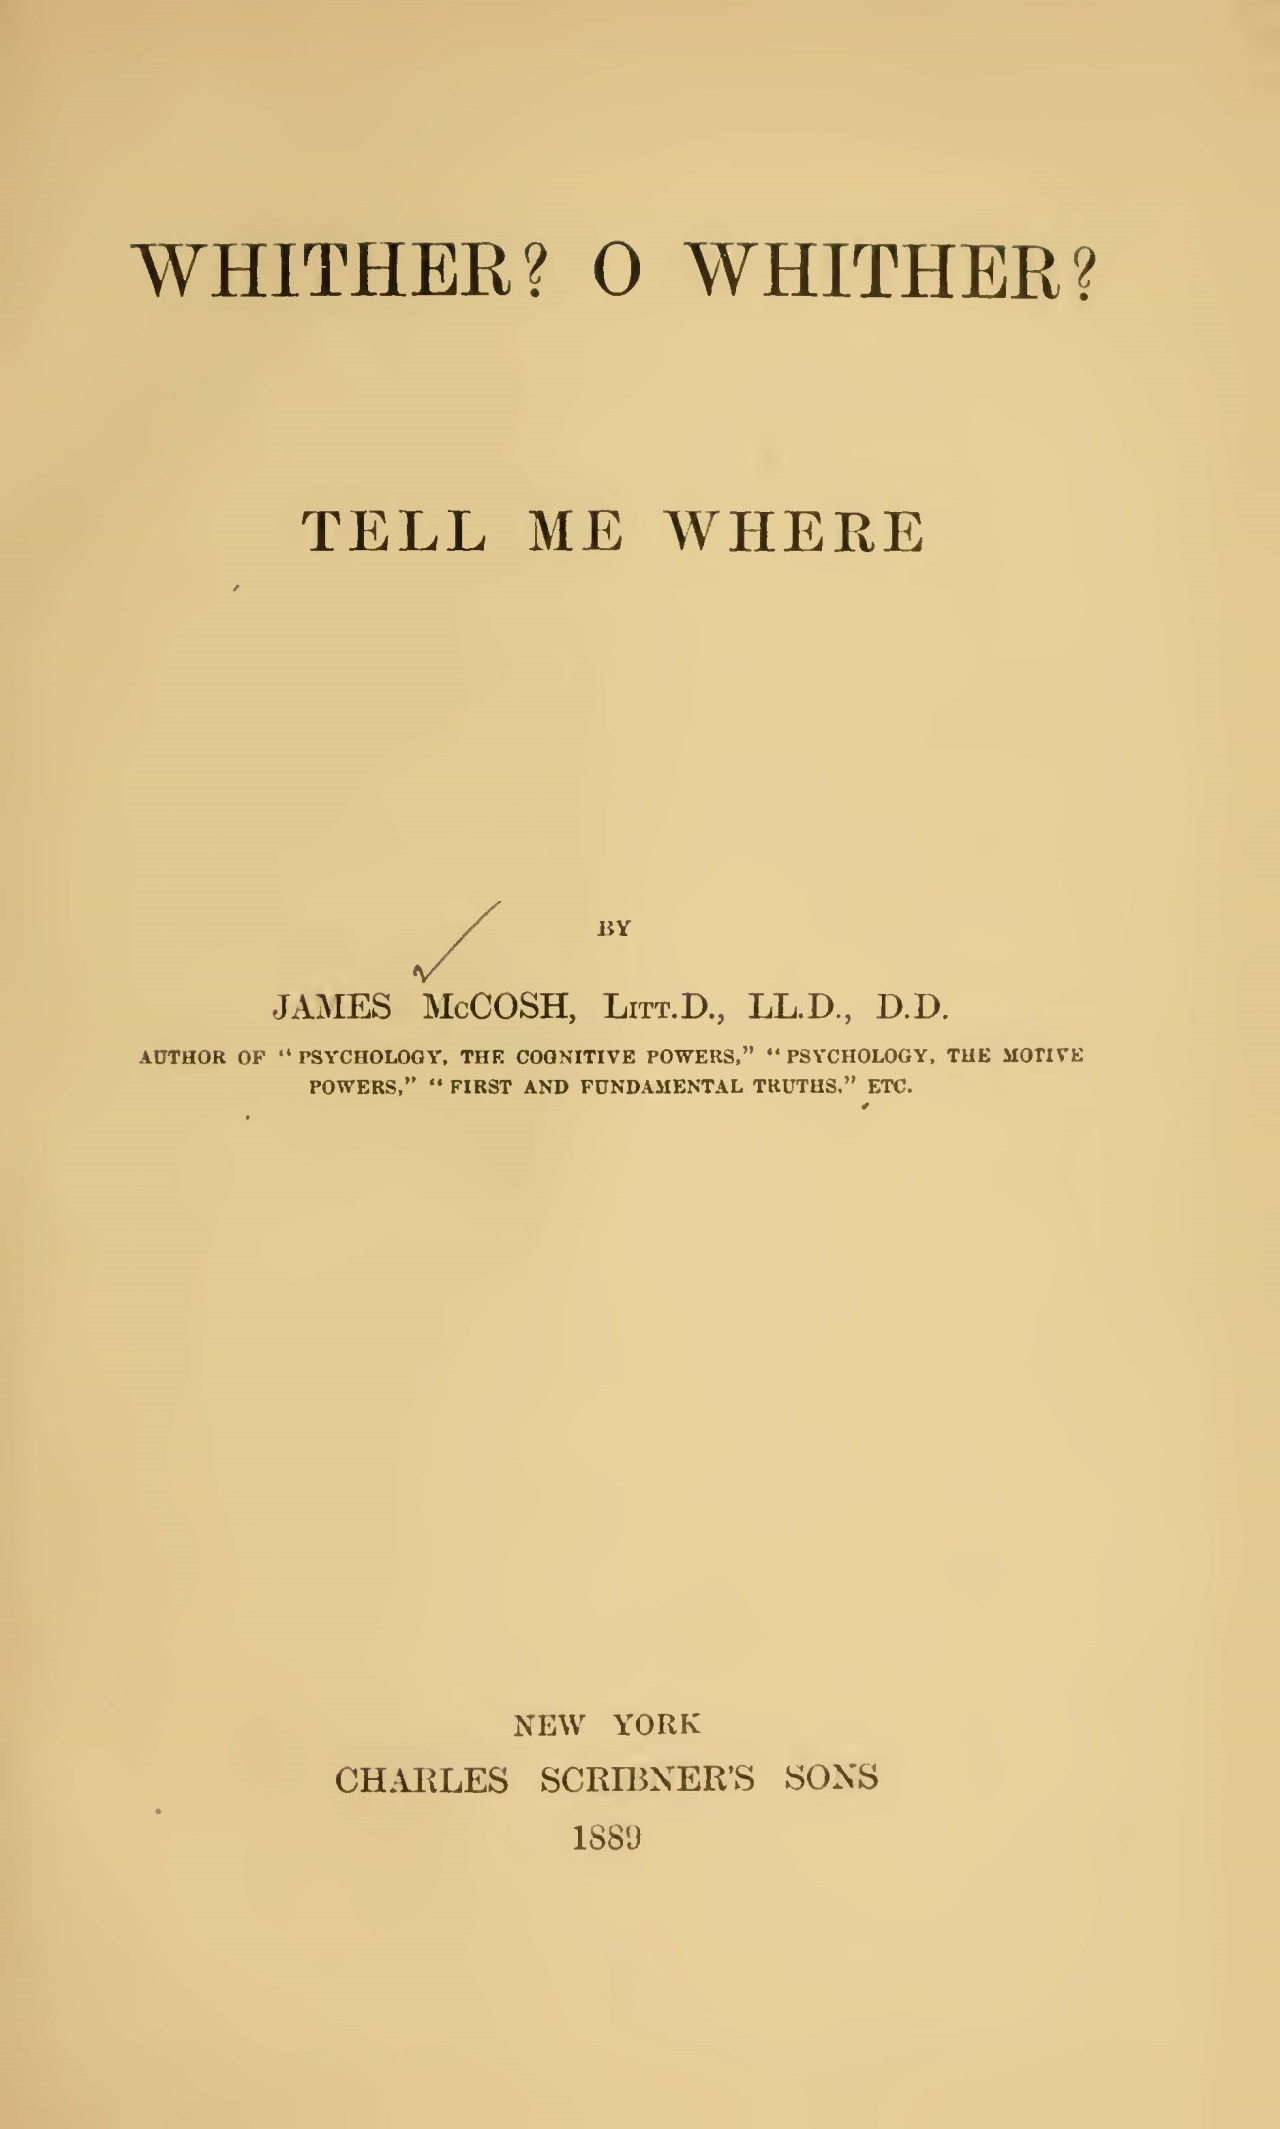 McCosh, James, Whither O Whither Tell Me Where Title Page.jpg